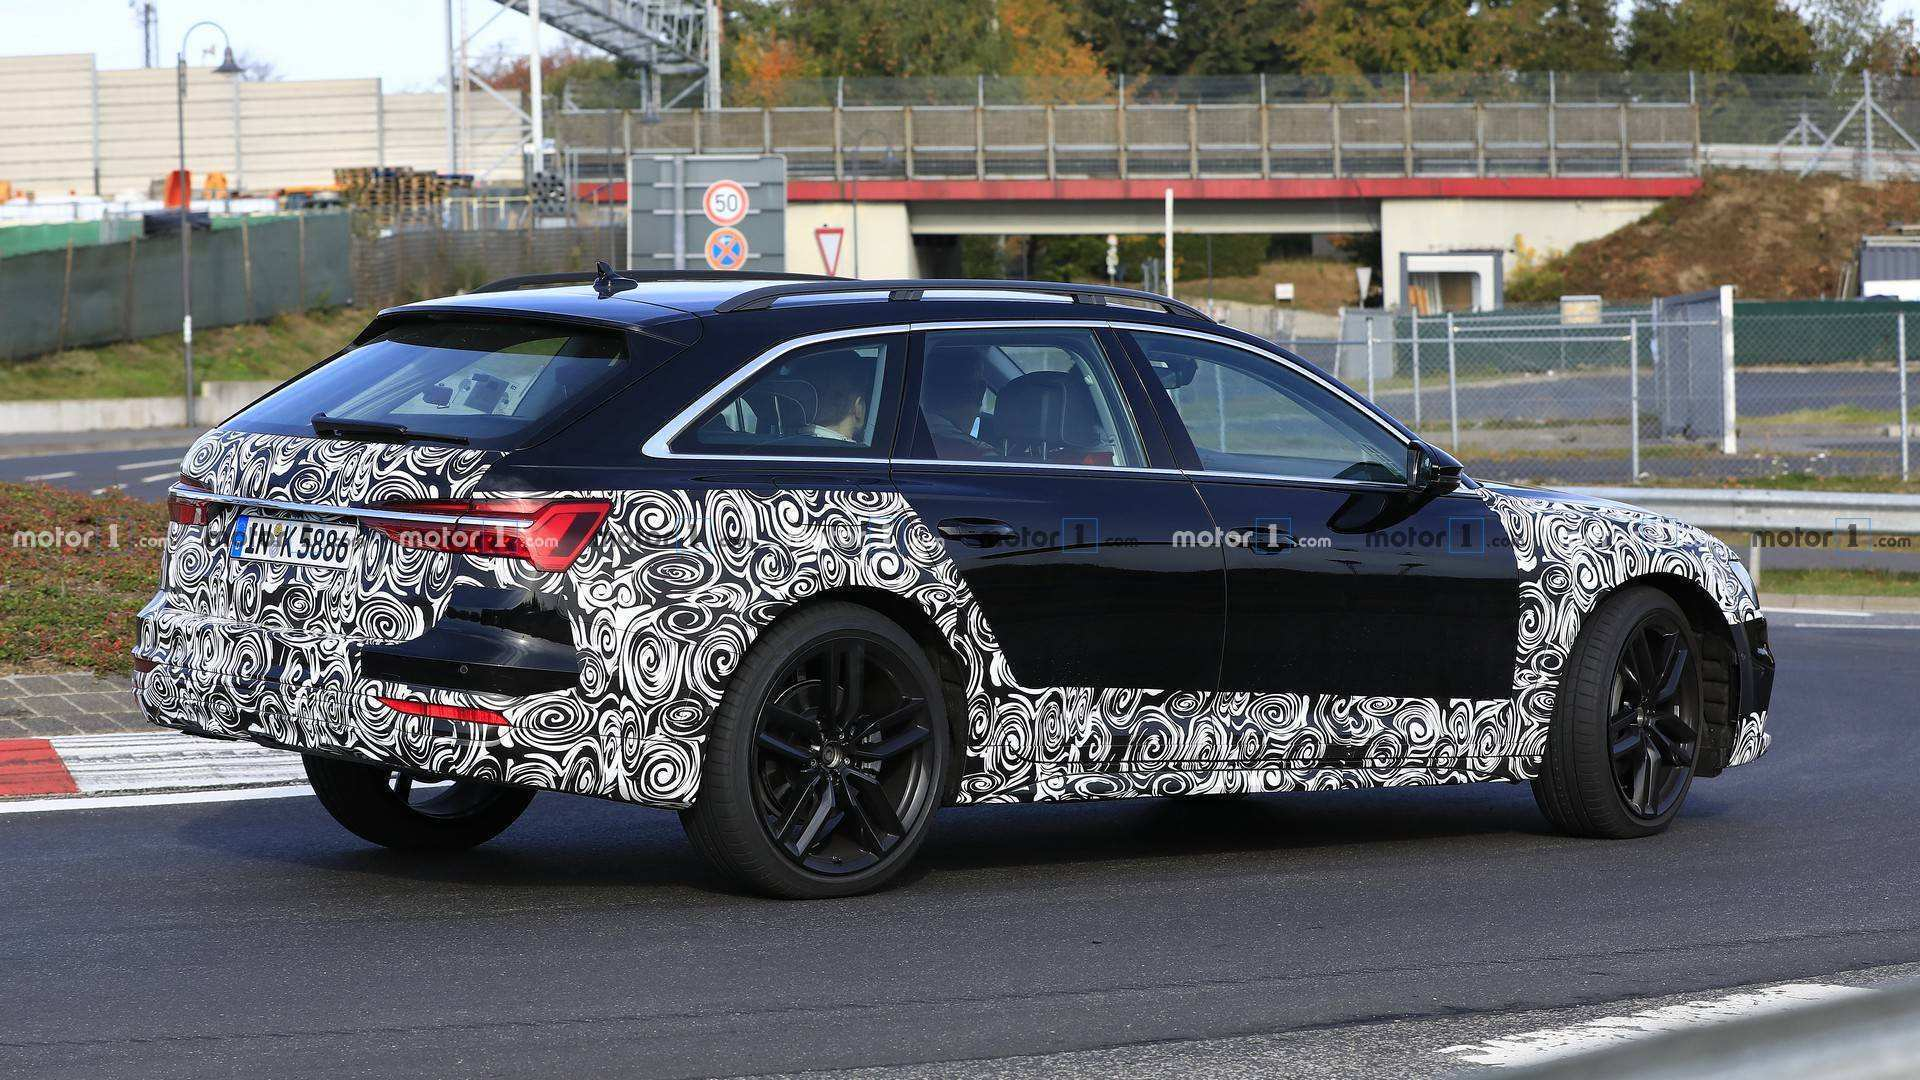 55 The Best 2020 Audi A6 Allroad Usa Release Date